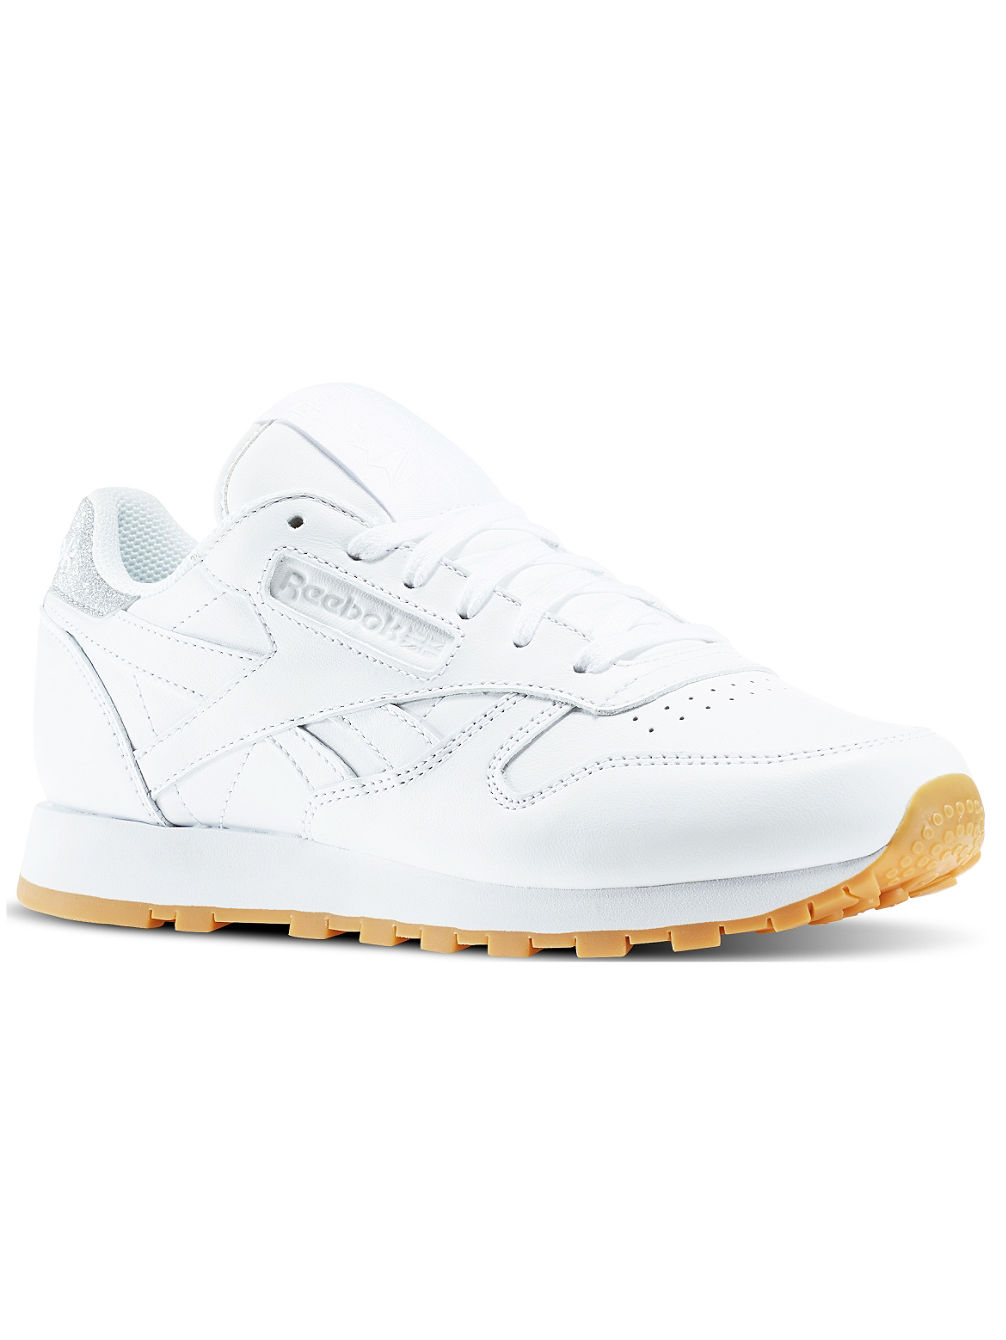 a0637bb1378ae5 Buy Reebok Classic Leather MET Diamond Sneakers Women online at  blue-tomato.com